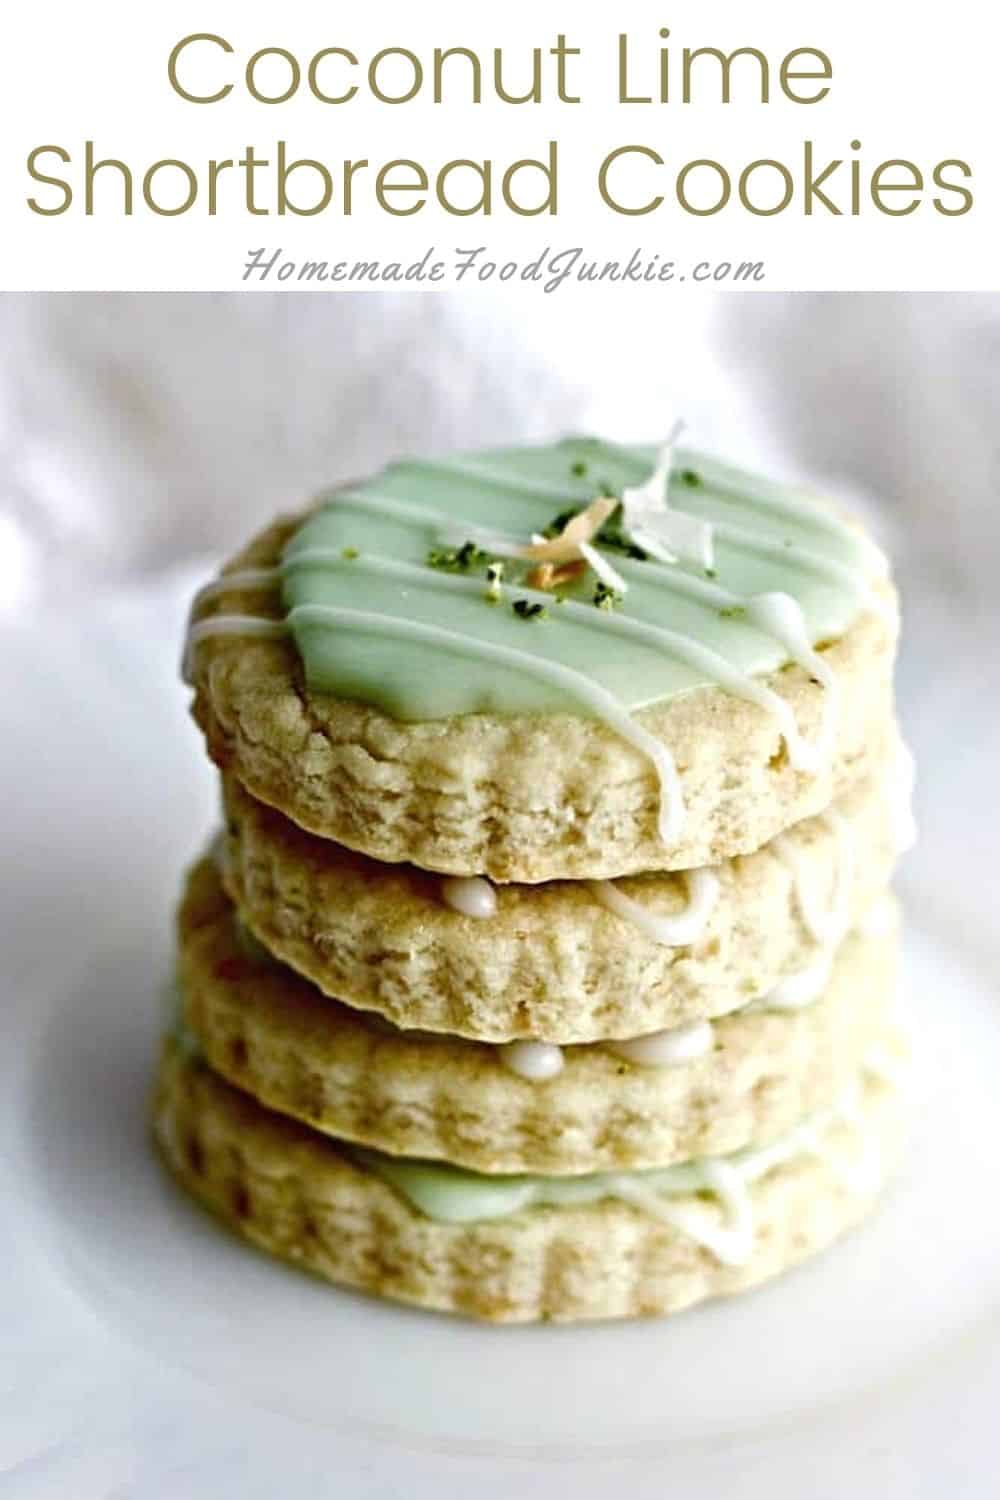 Coconut Lime Shortbread Cookies-Pin Image